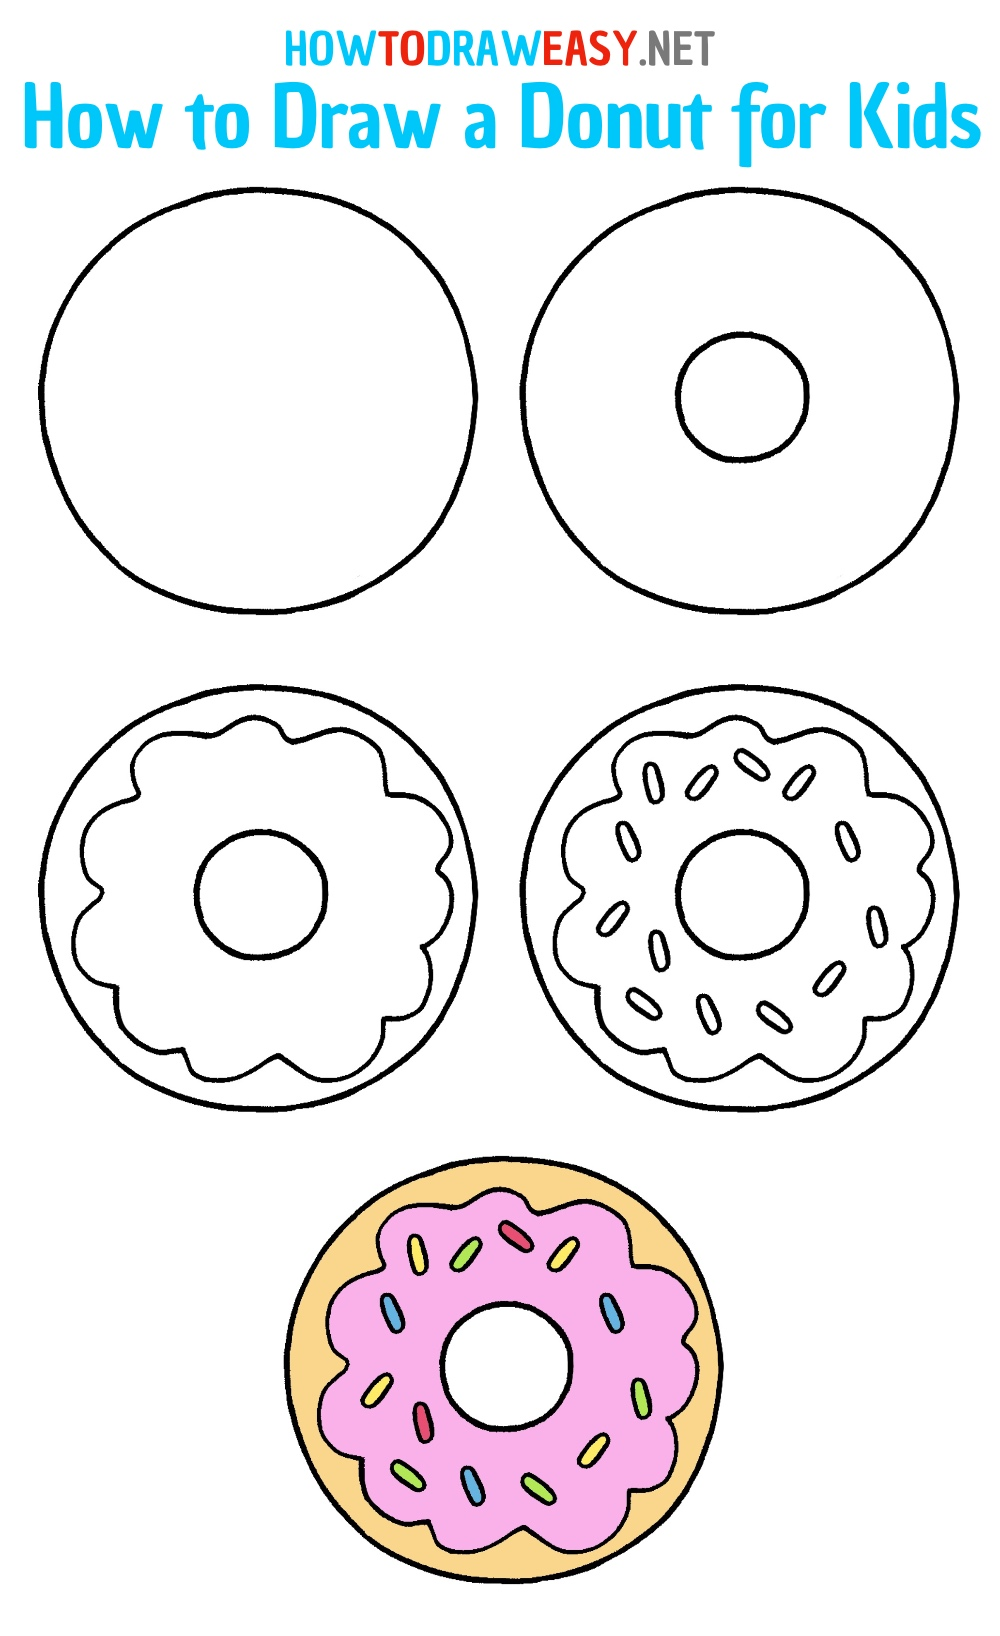 How to Draw a Donut Step by Step